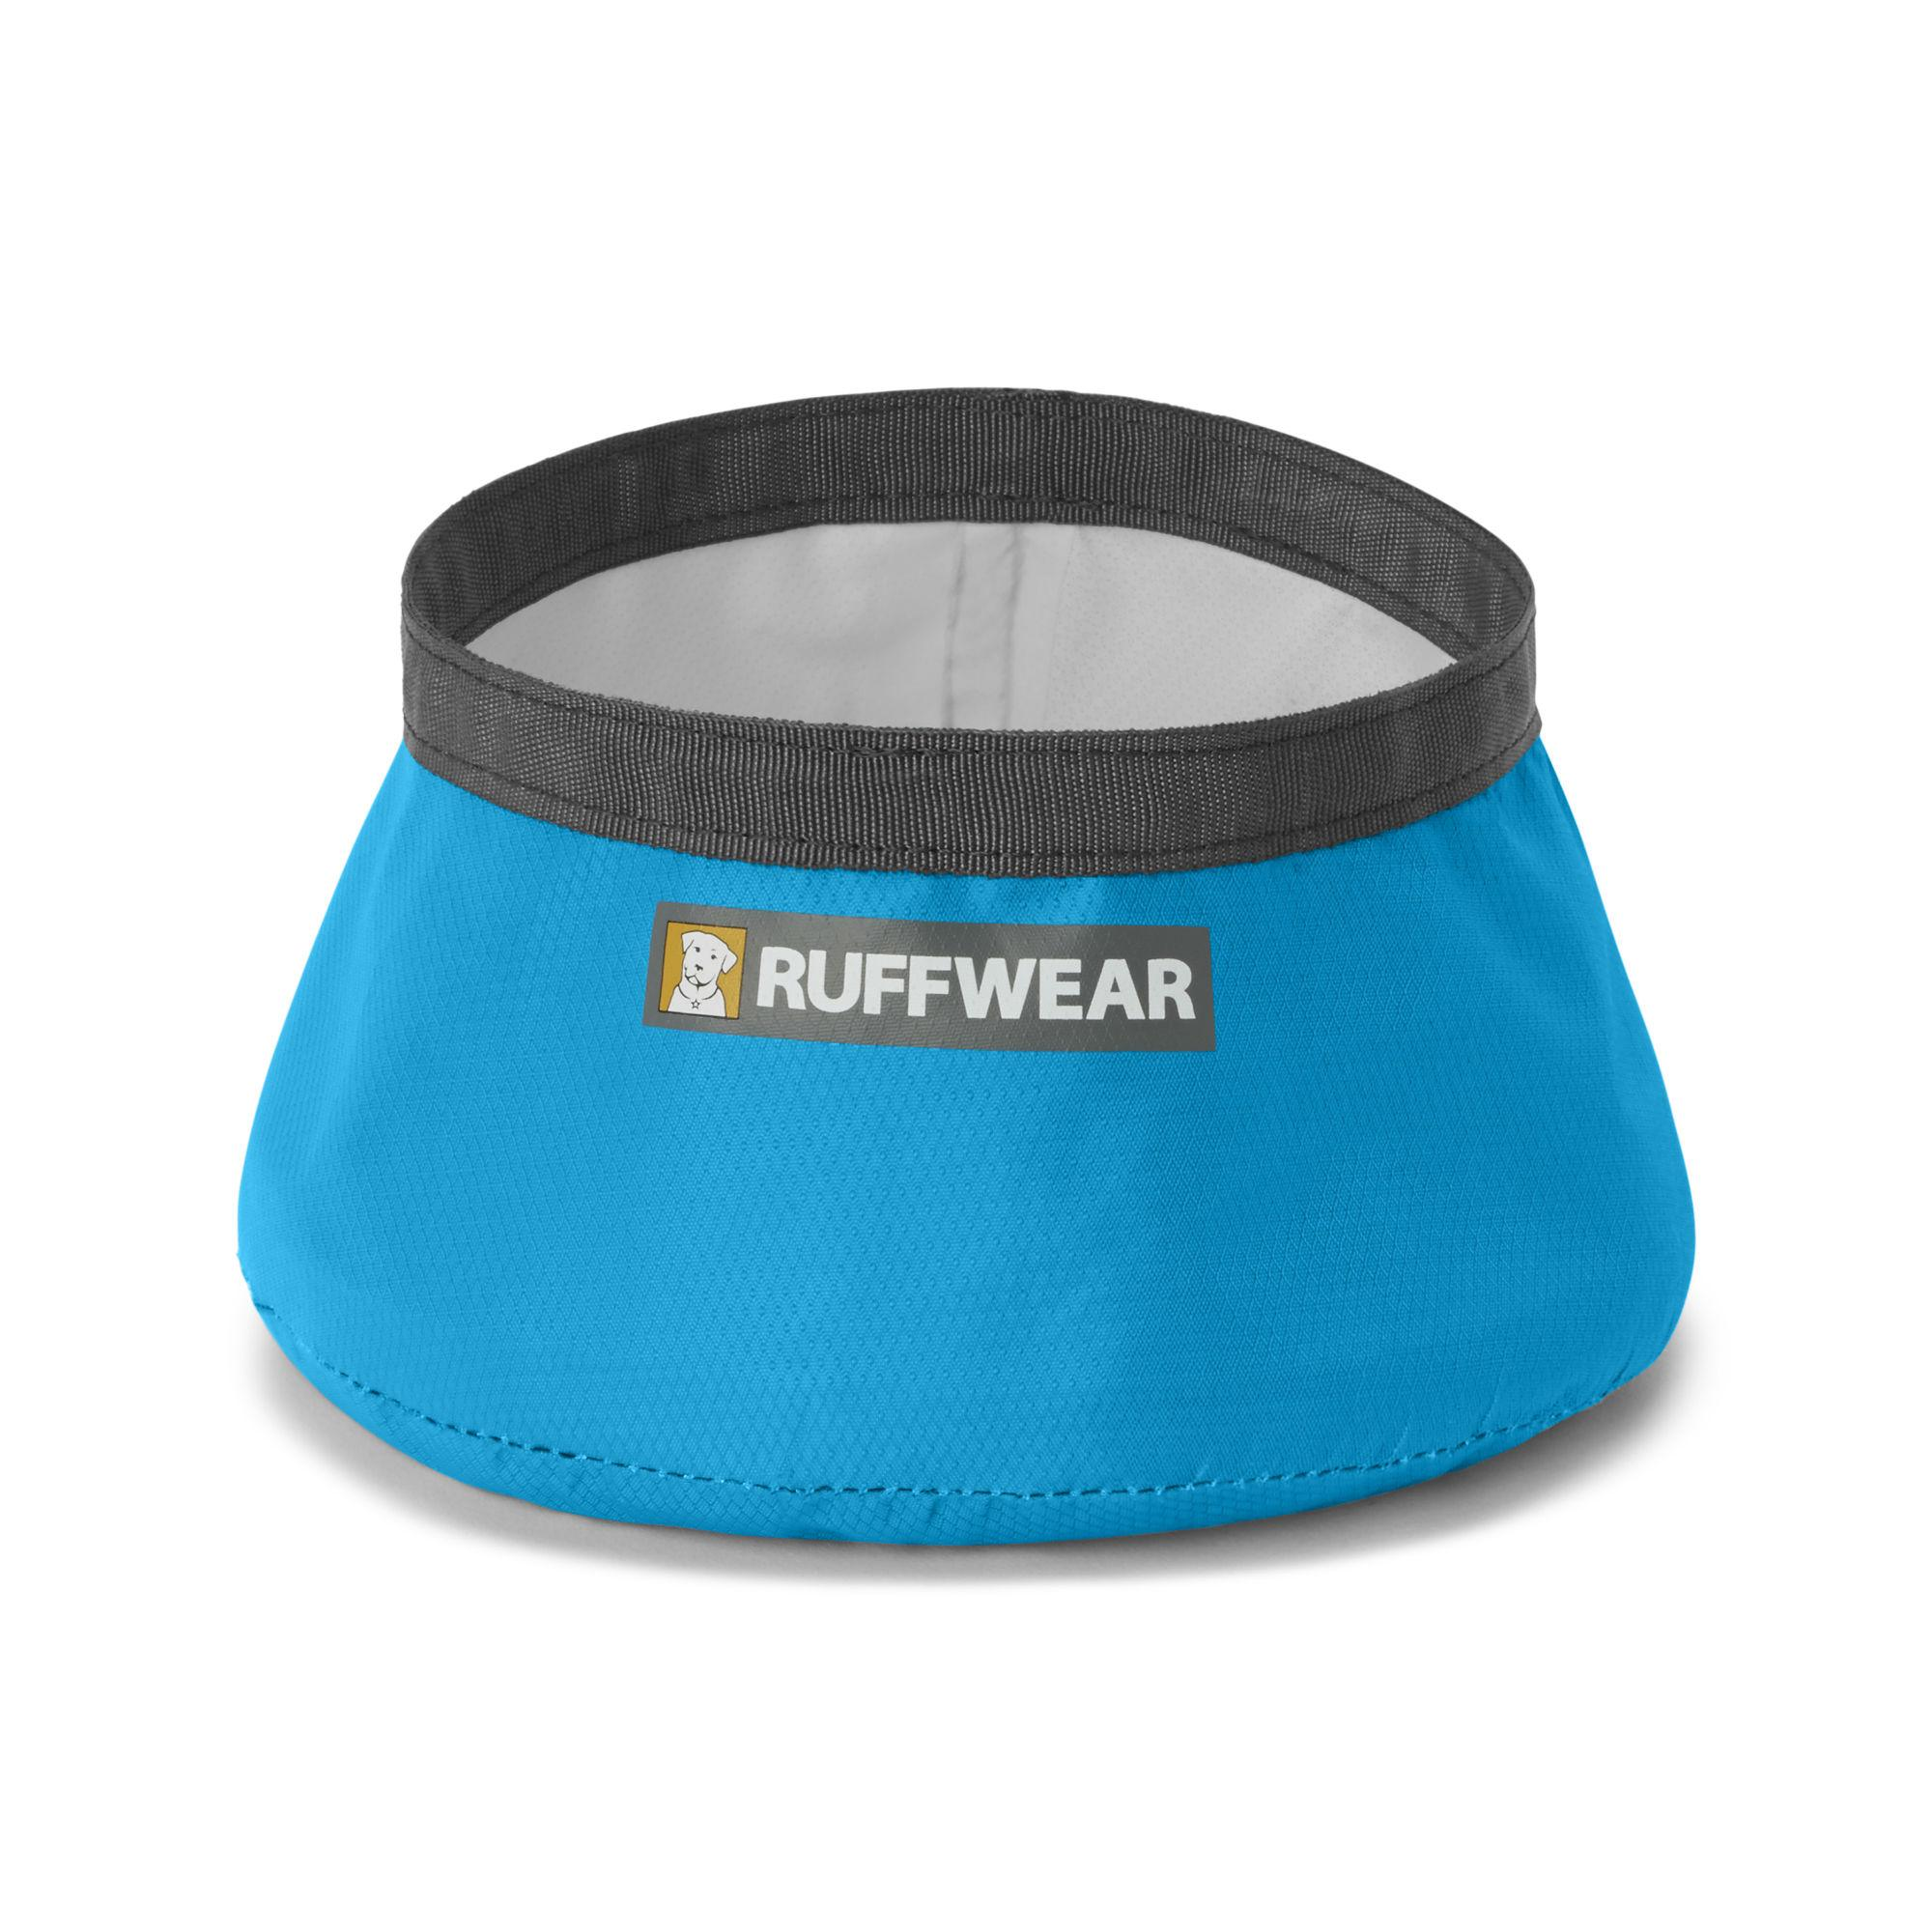 Trail Runner Travel Dog Bowl By RuffWear